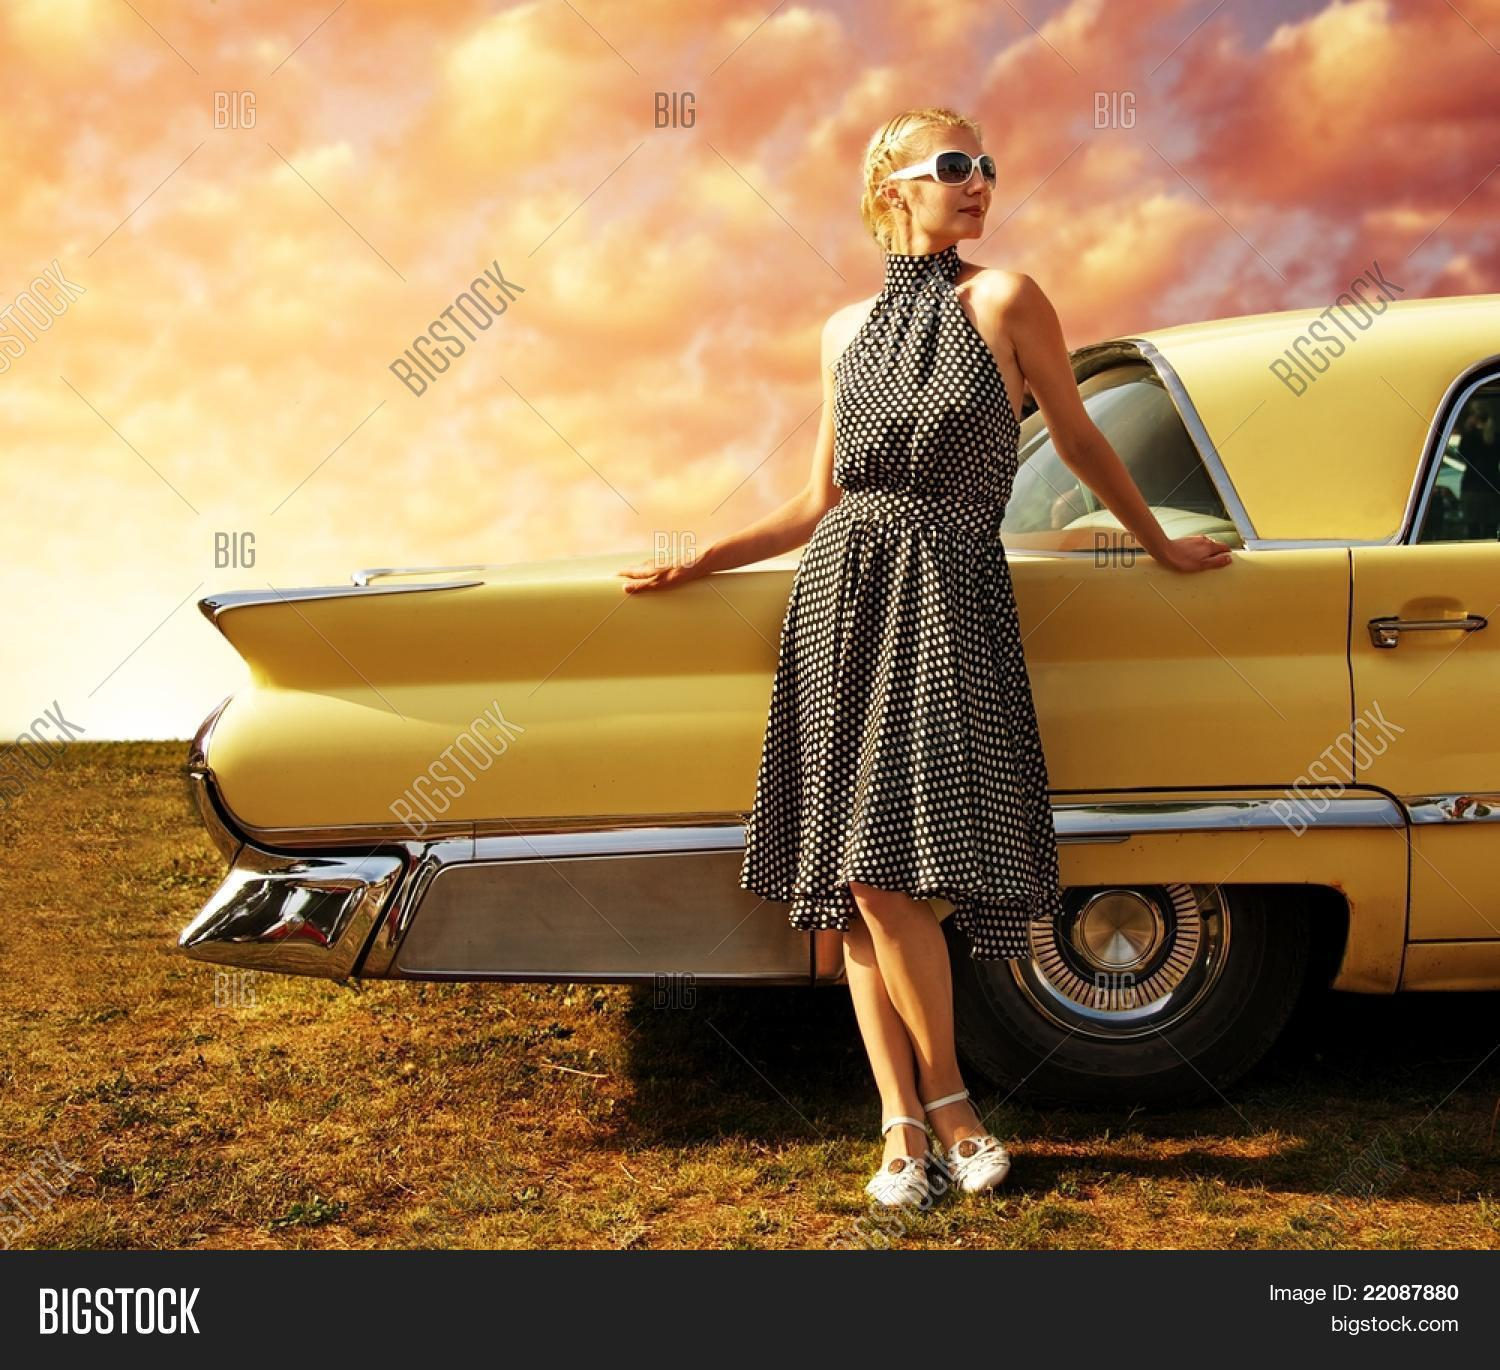 60s,70s,american,auto,automobile,automotive,background,beauty,car,charming,chrome,design,detail,dramatic,dress,drive,fashion,girl,horizontal,lady,lifestyle,long,model,pose,posing,power,race,retro,rim. antique,road,sedan,sexy,shine,sky,standing,style,stylish,sunglasses,tail,tire,transport,usa,vehicle,vintage,wheel,woman,yellow,young